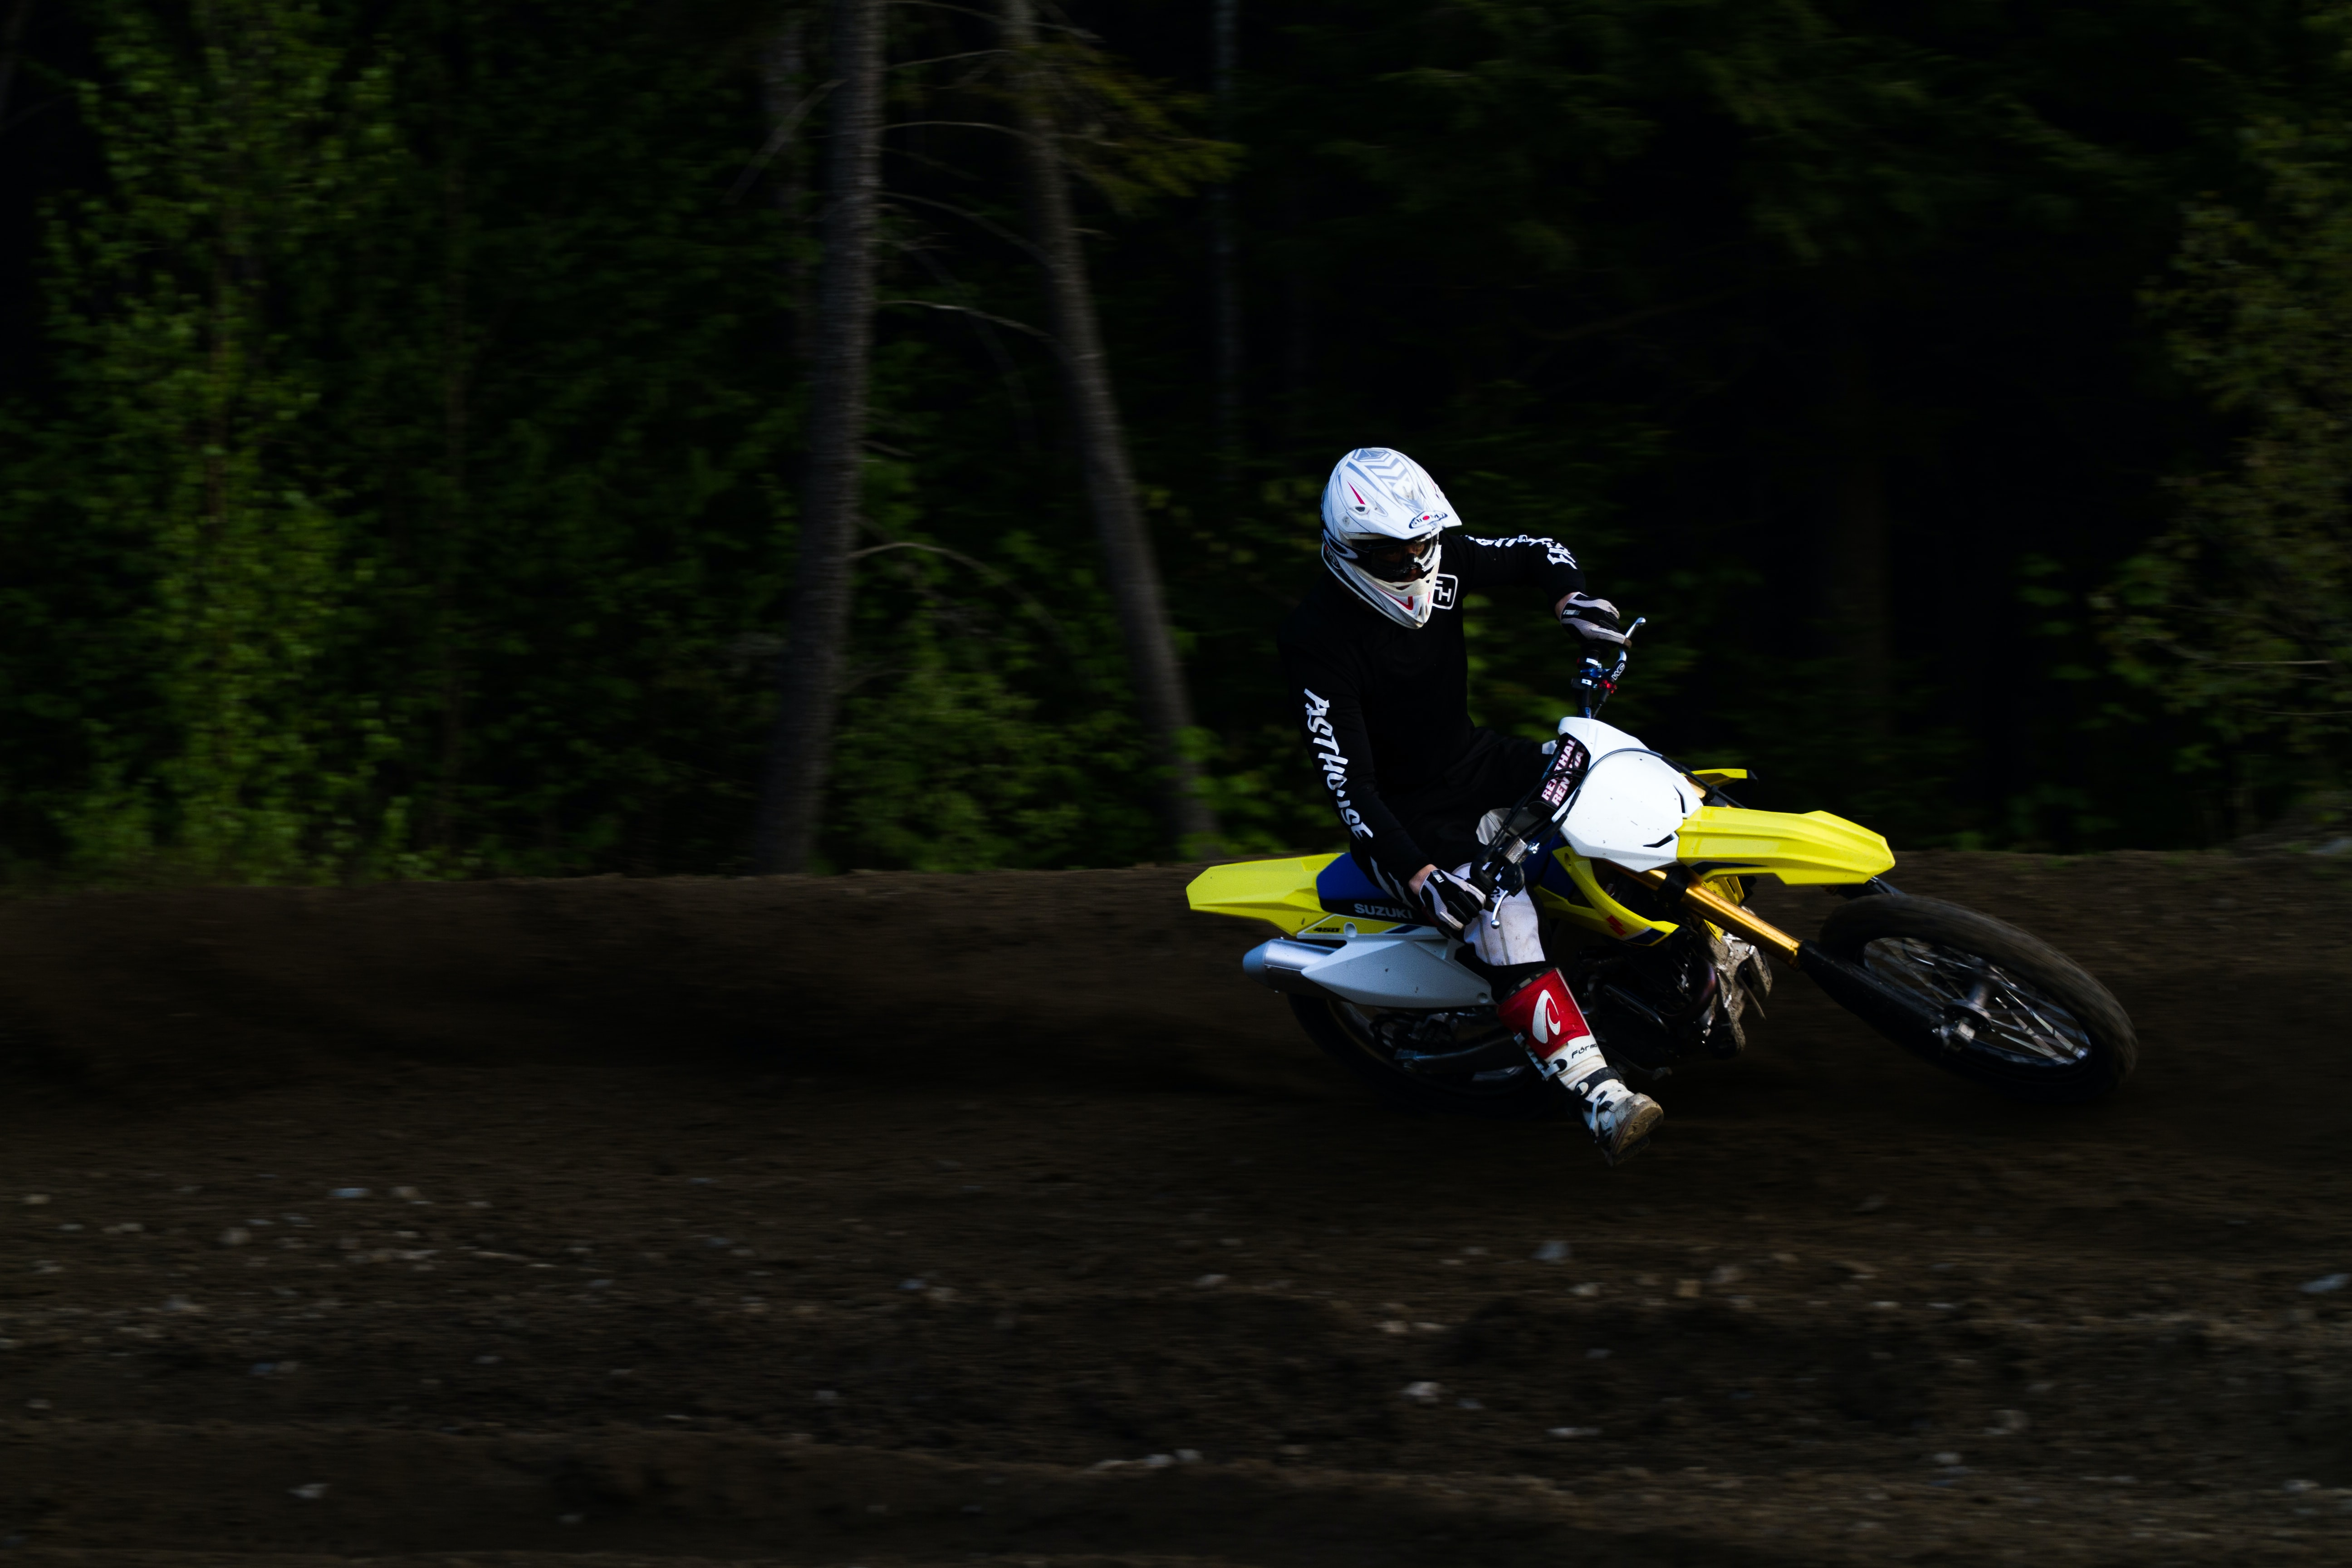 man ridding yellow and white motocross dirt bike